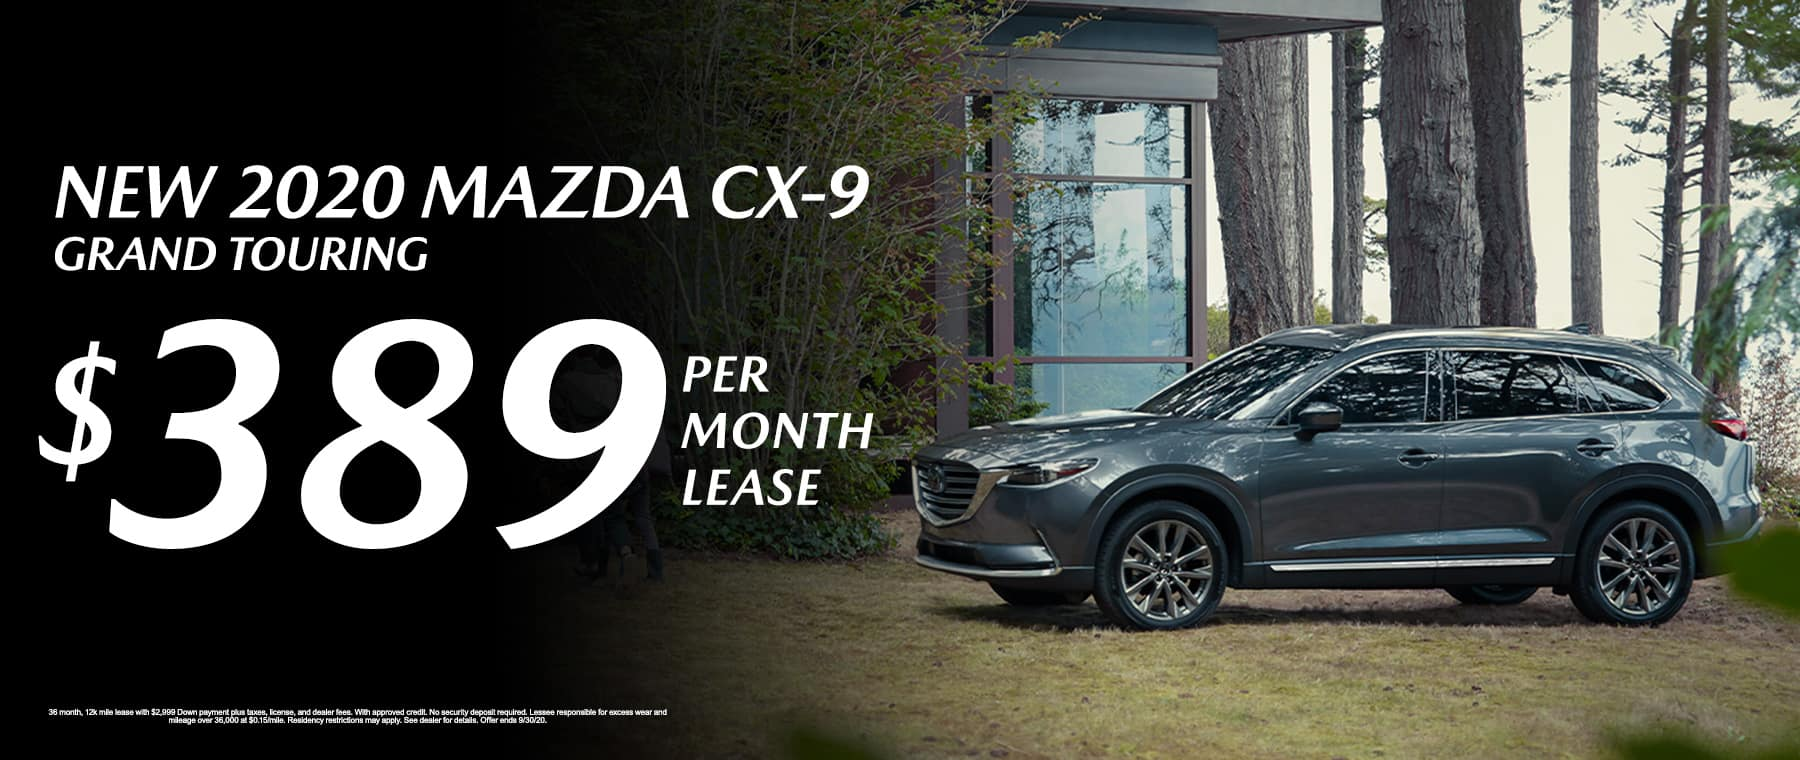 Lease a New 2020 Mazda CX-9 Grand Touring for $389 per month at Mazda of Fort Walton Beach!